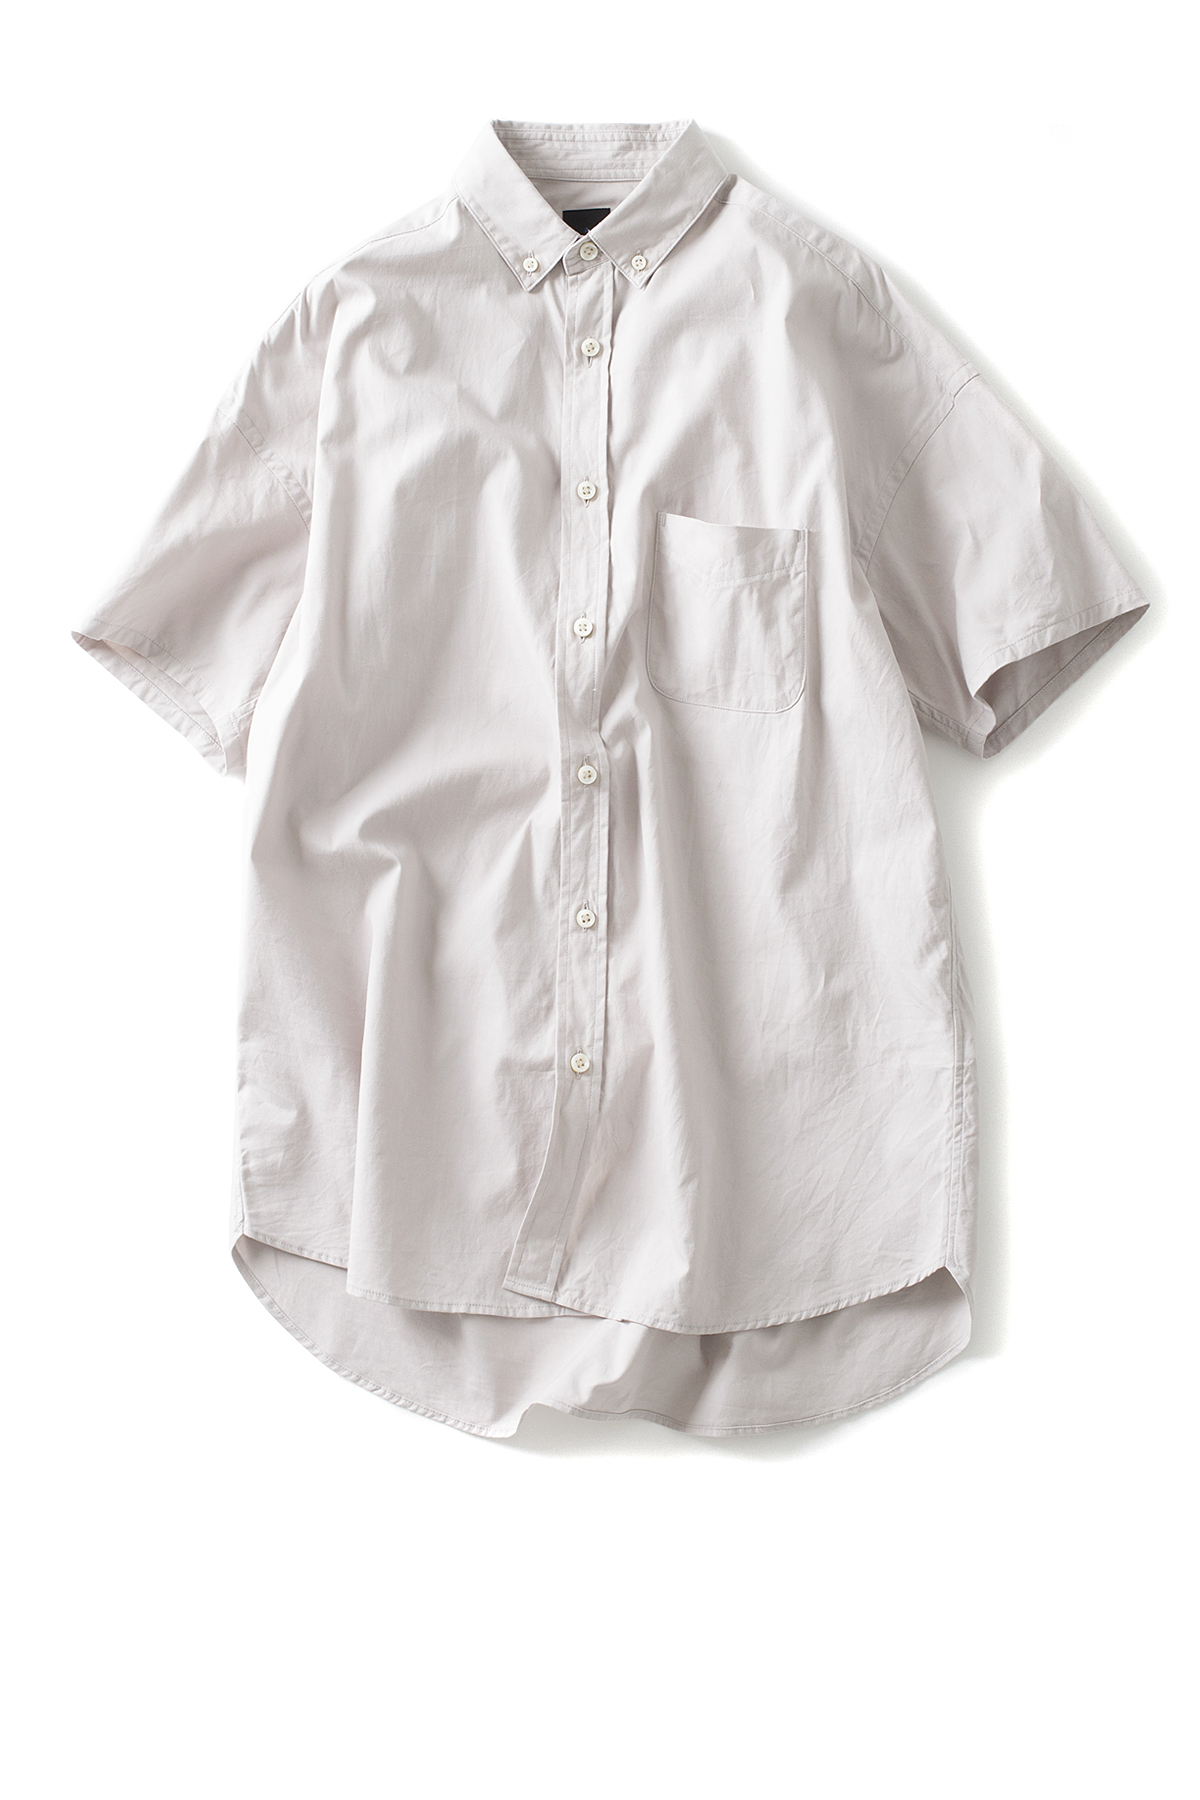 maillot : Soft OX Relax S/S BD Shirt (Stone)